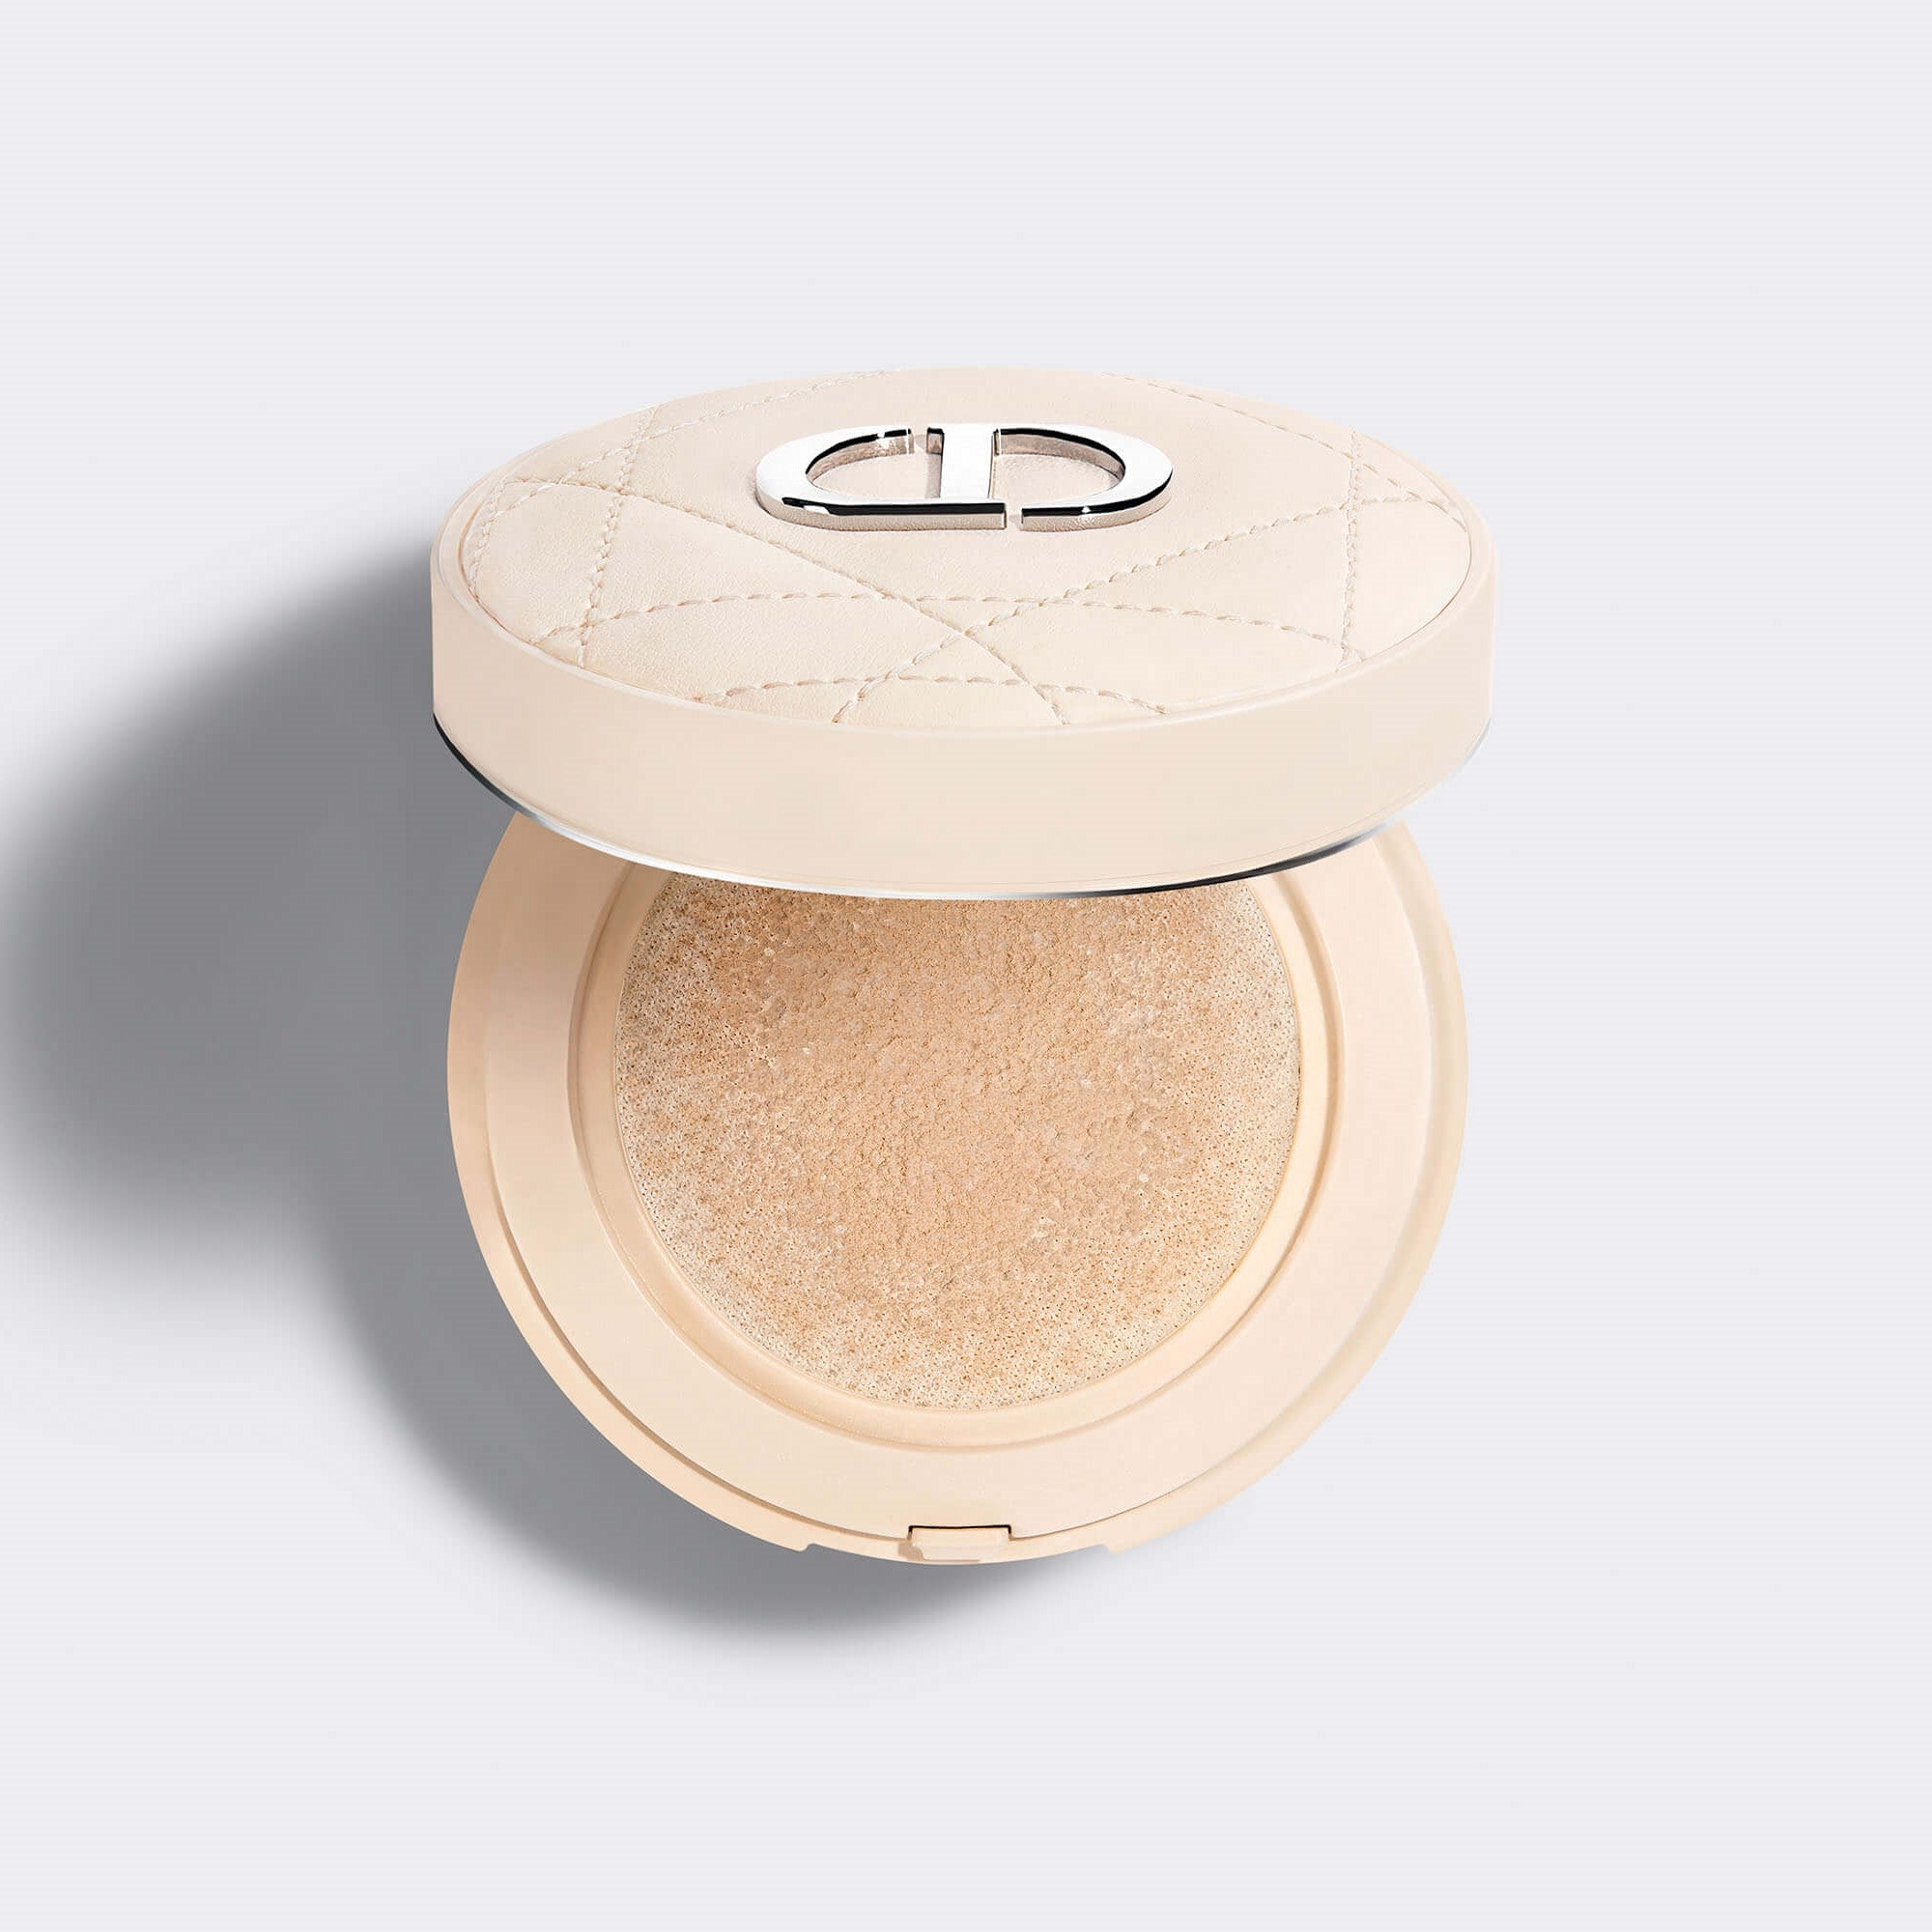 DIOR FOREVER CUSHION POWDER | Ultra-fine skin fresh loose powder - long-wear translucent perfection